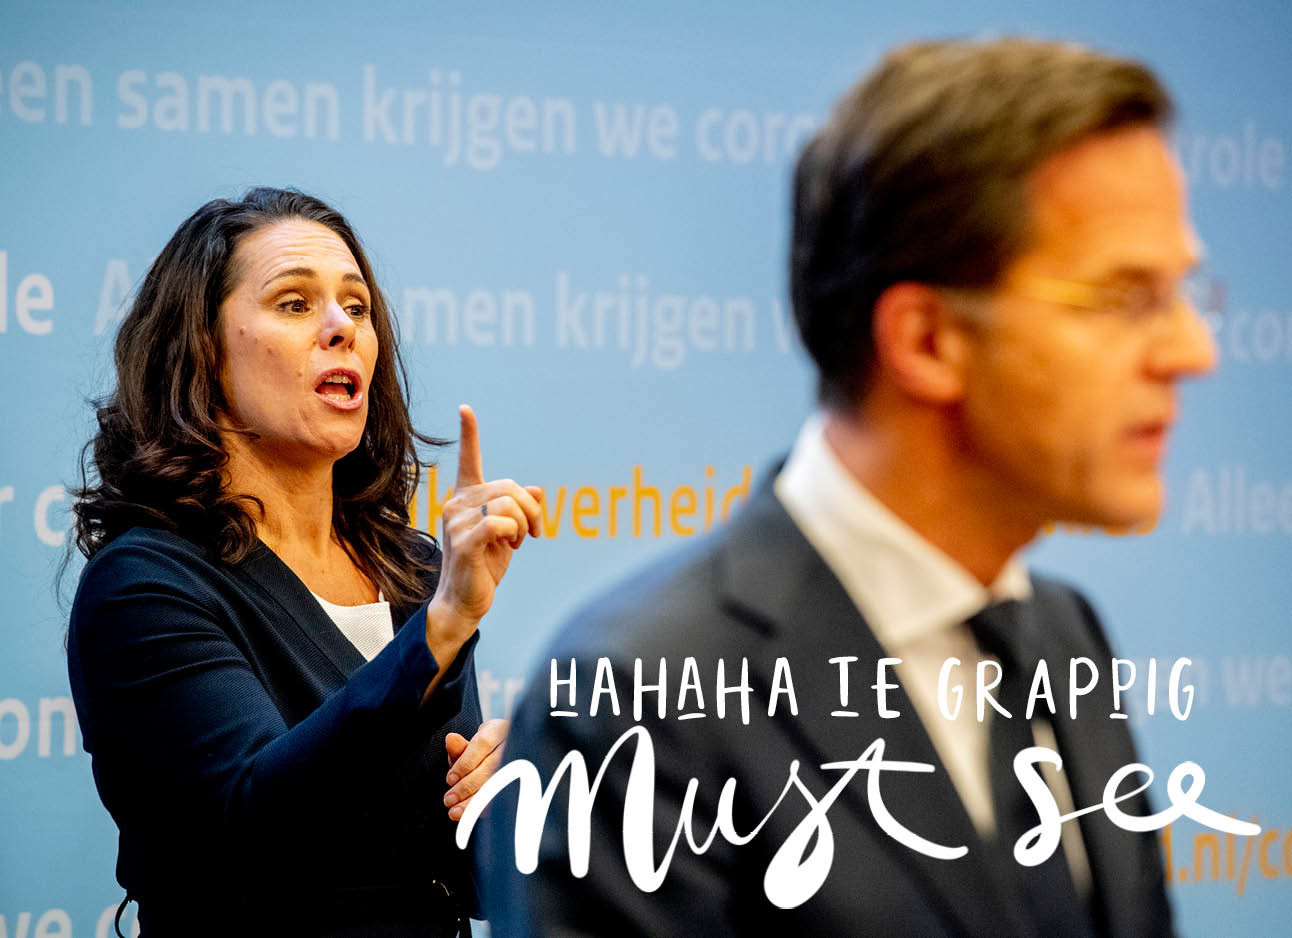 filmpje over mark rutte en irma sluis